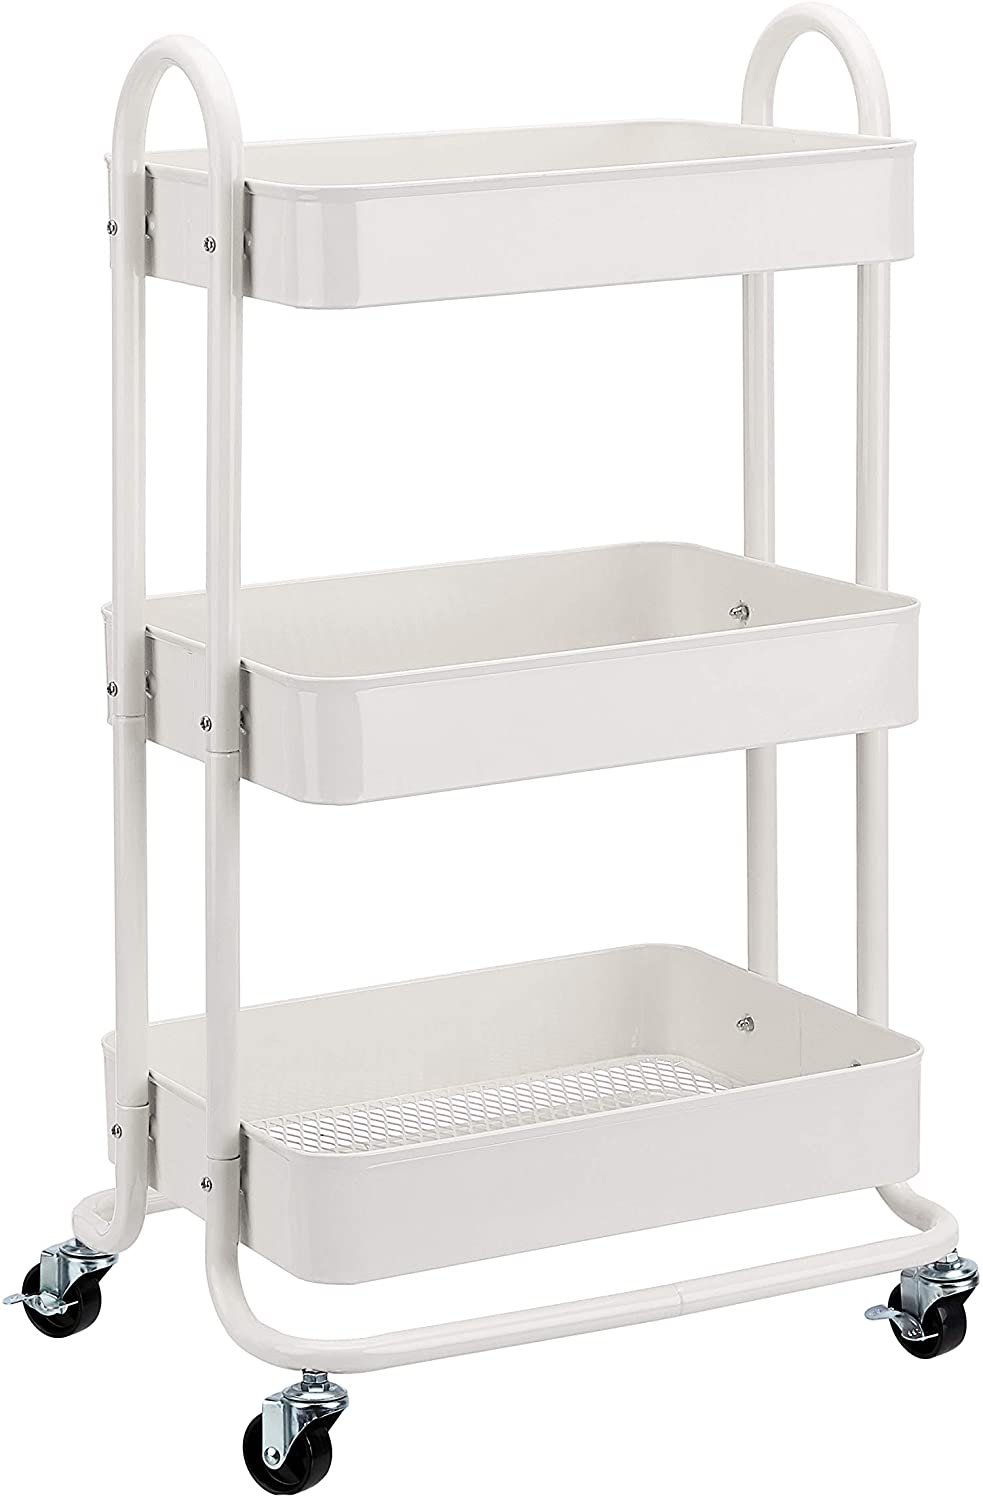 AmazonBasics 3-Tier Rolling Utility or Kitchen Cart - White